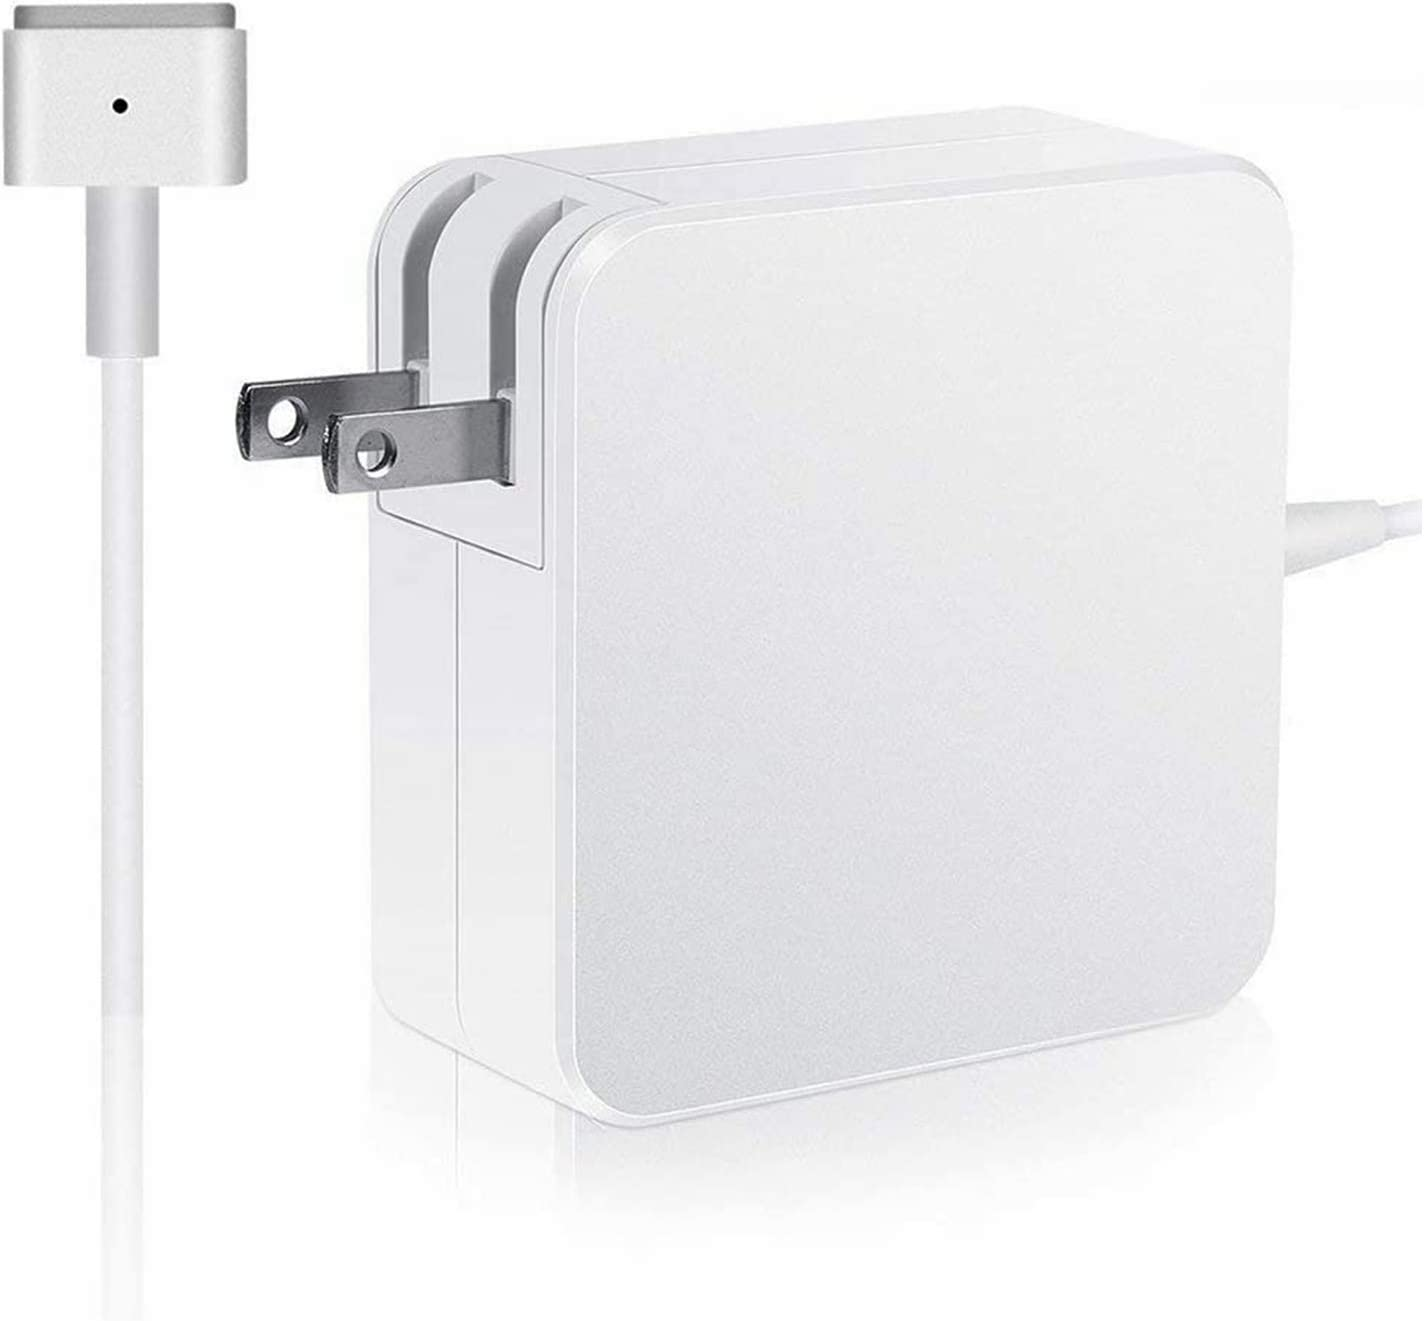 Mac Book Air Charger, 45w T-Type(45T) Replacement Power Adapter for Mac Book Air 11-inch & 13 inch(White)